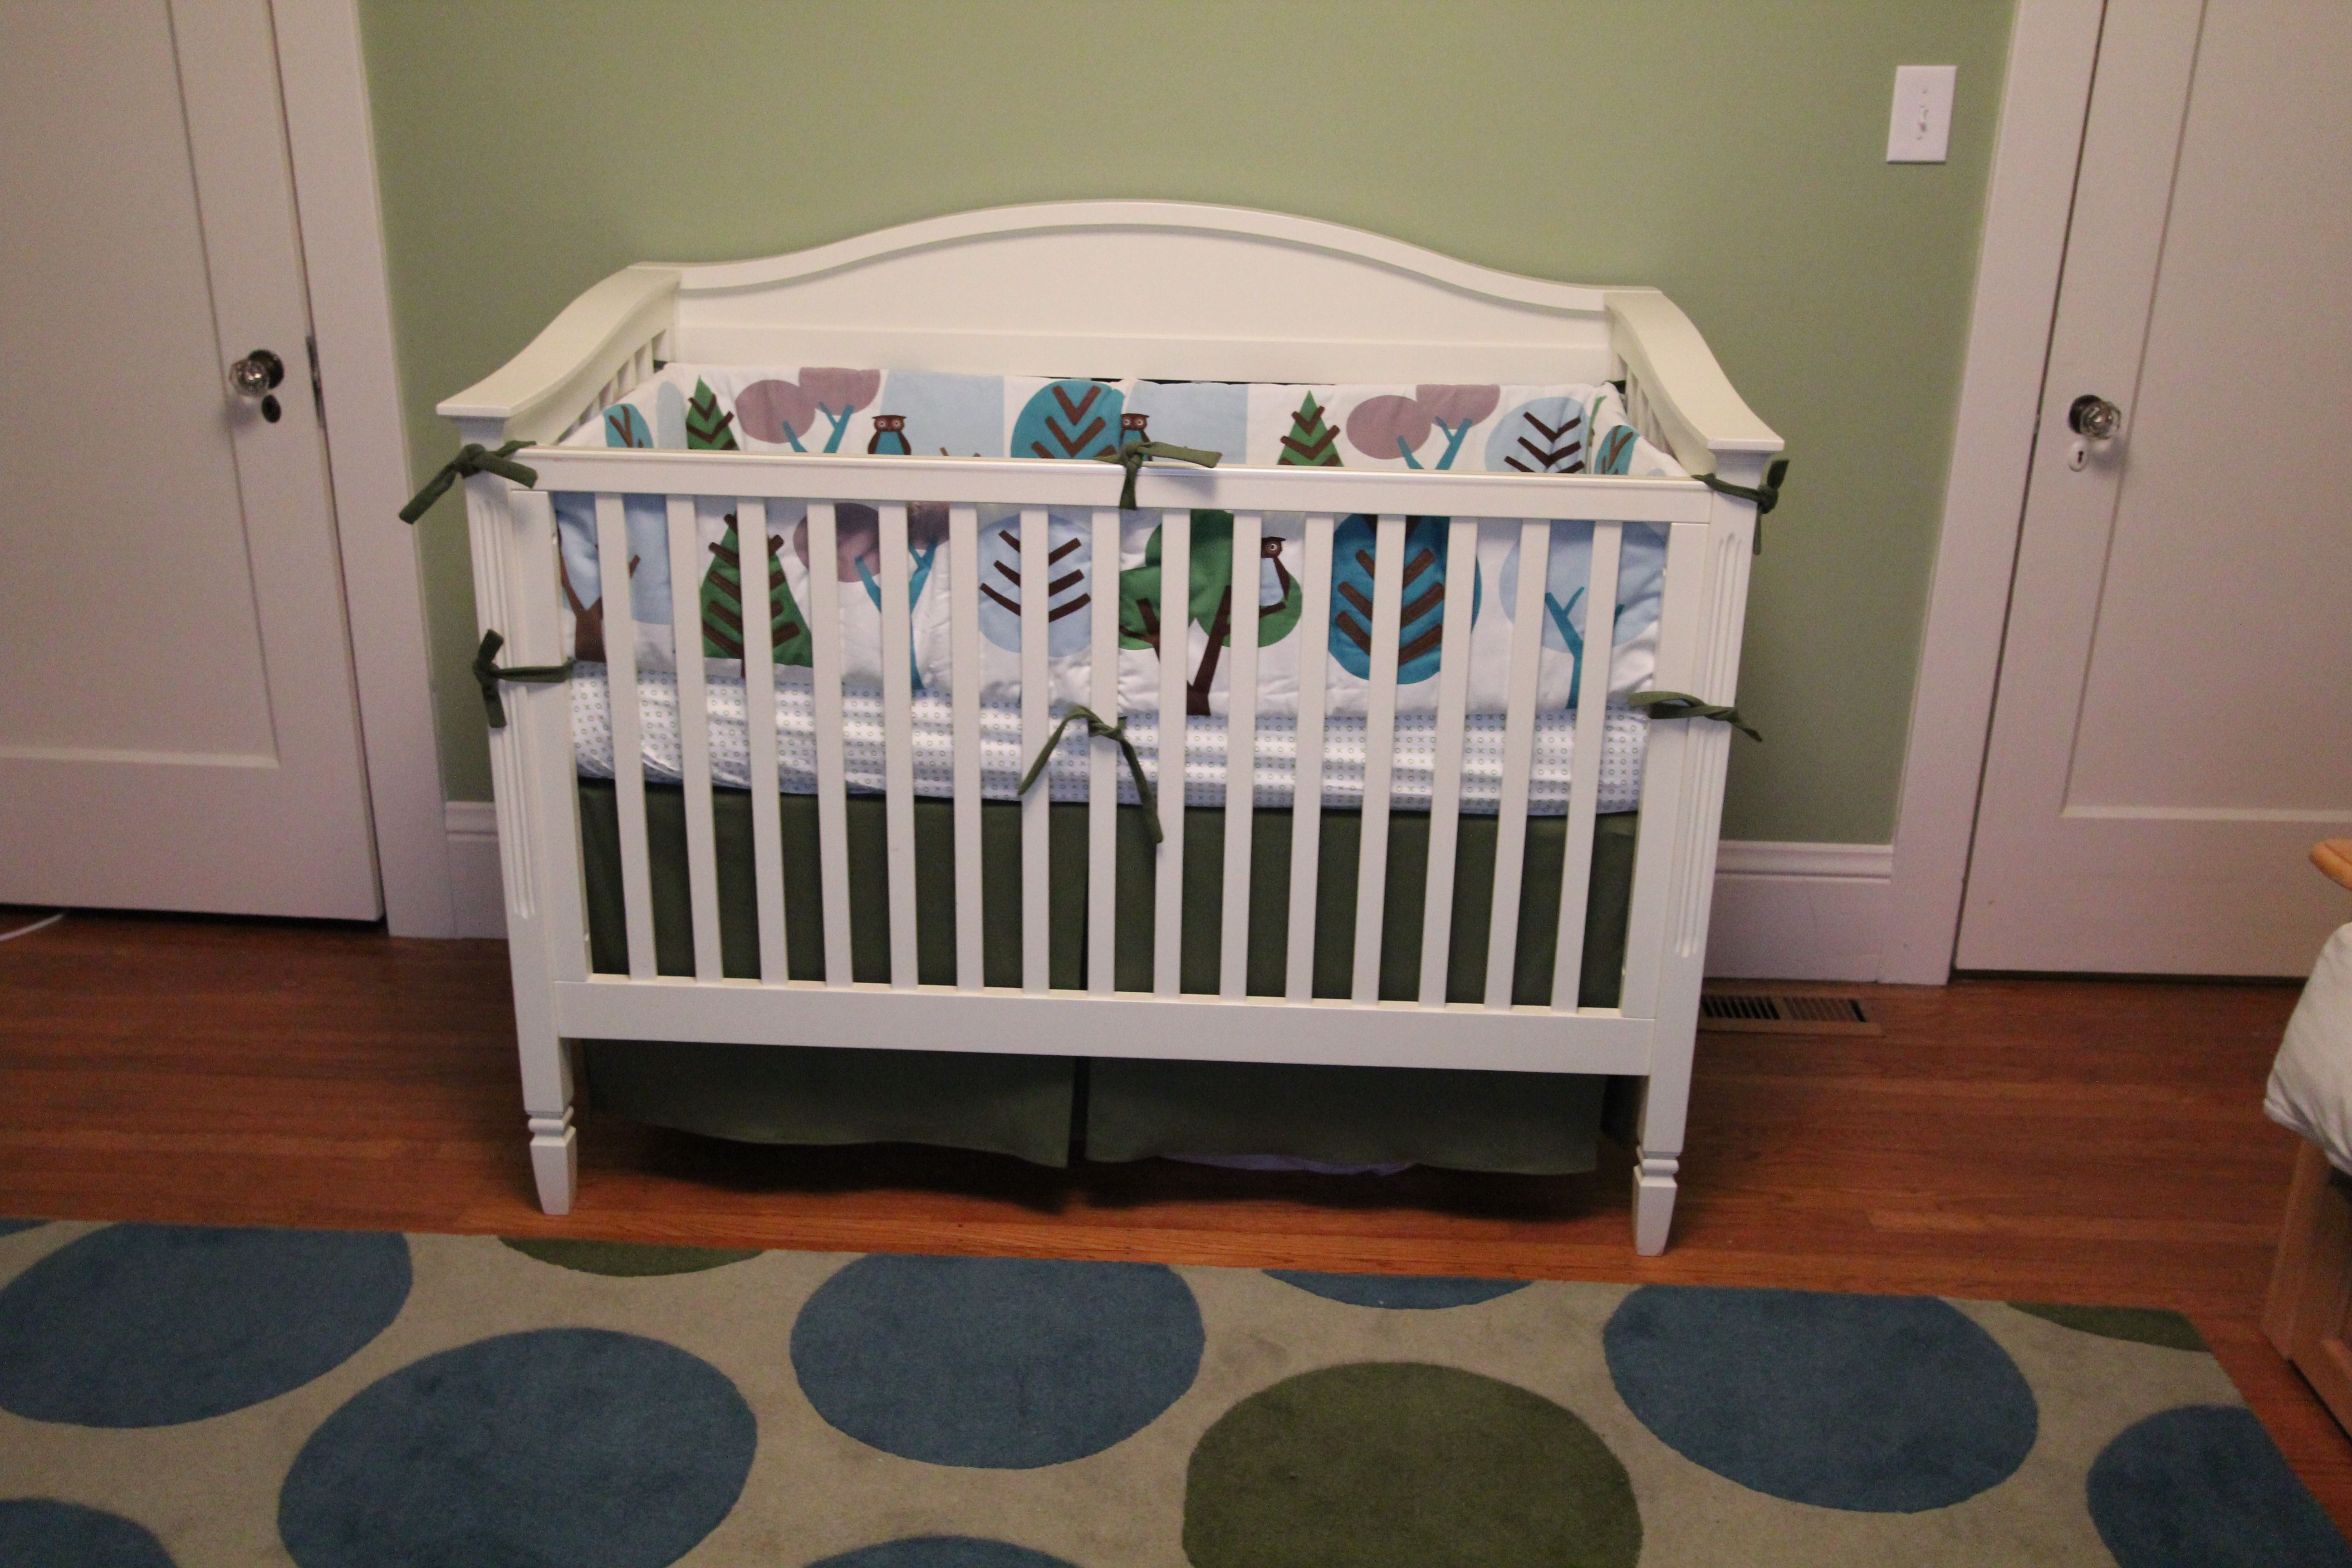 My finished nursery!